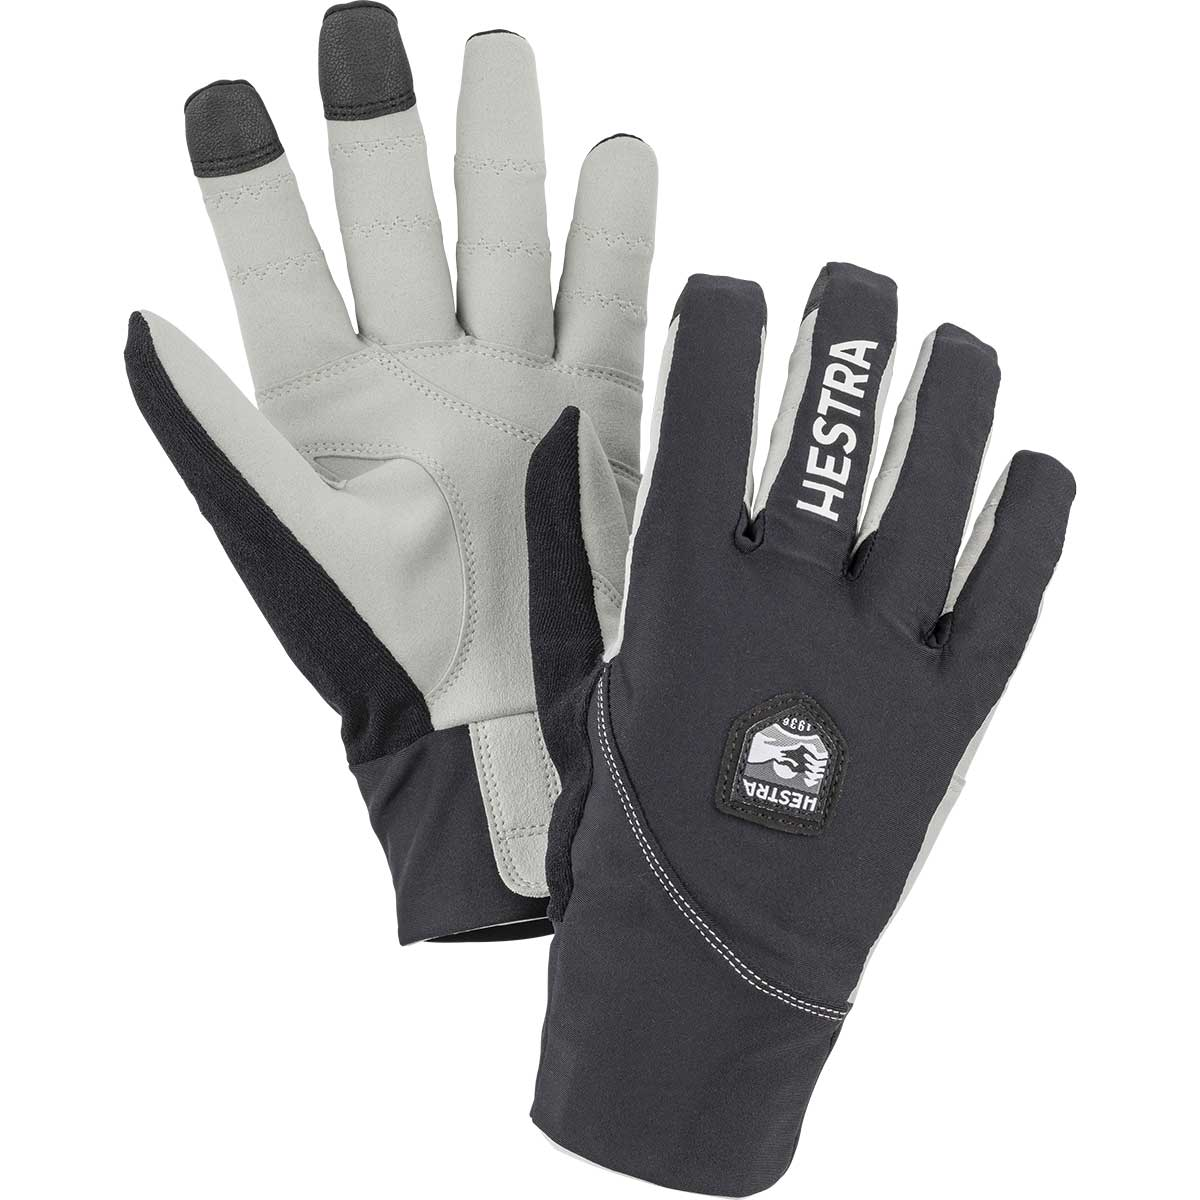 Hestra Ergo Grip Race Cut Glove in black and light grey